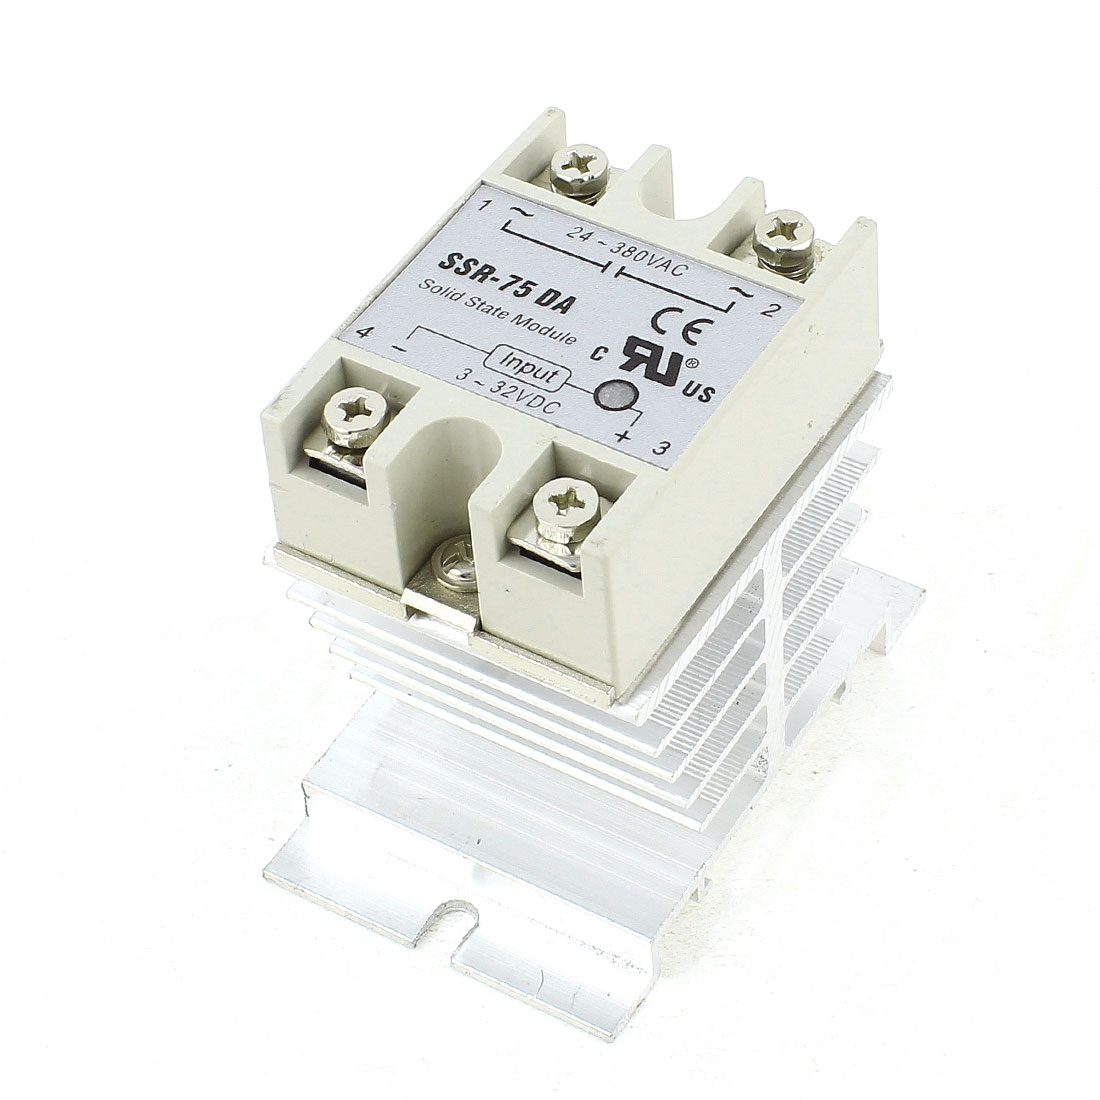 DC-AC 3-32V 24-380V 75A One Phase 4 Screw Terminal Silver Tone Aluminum Heat Sink SSR Solid State Relay